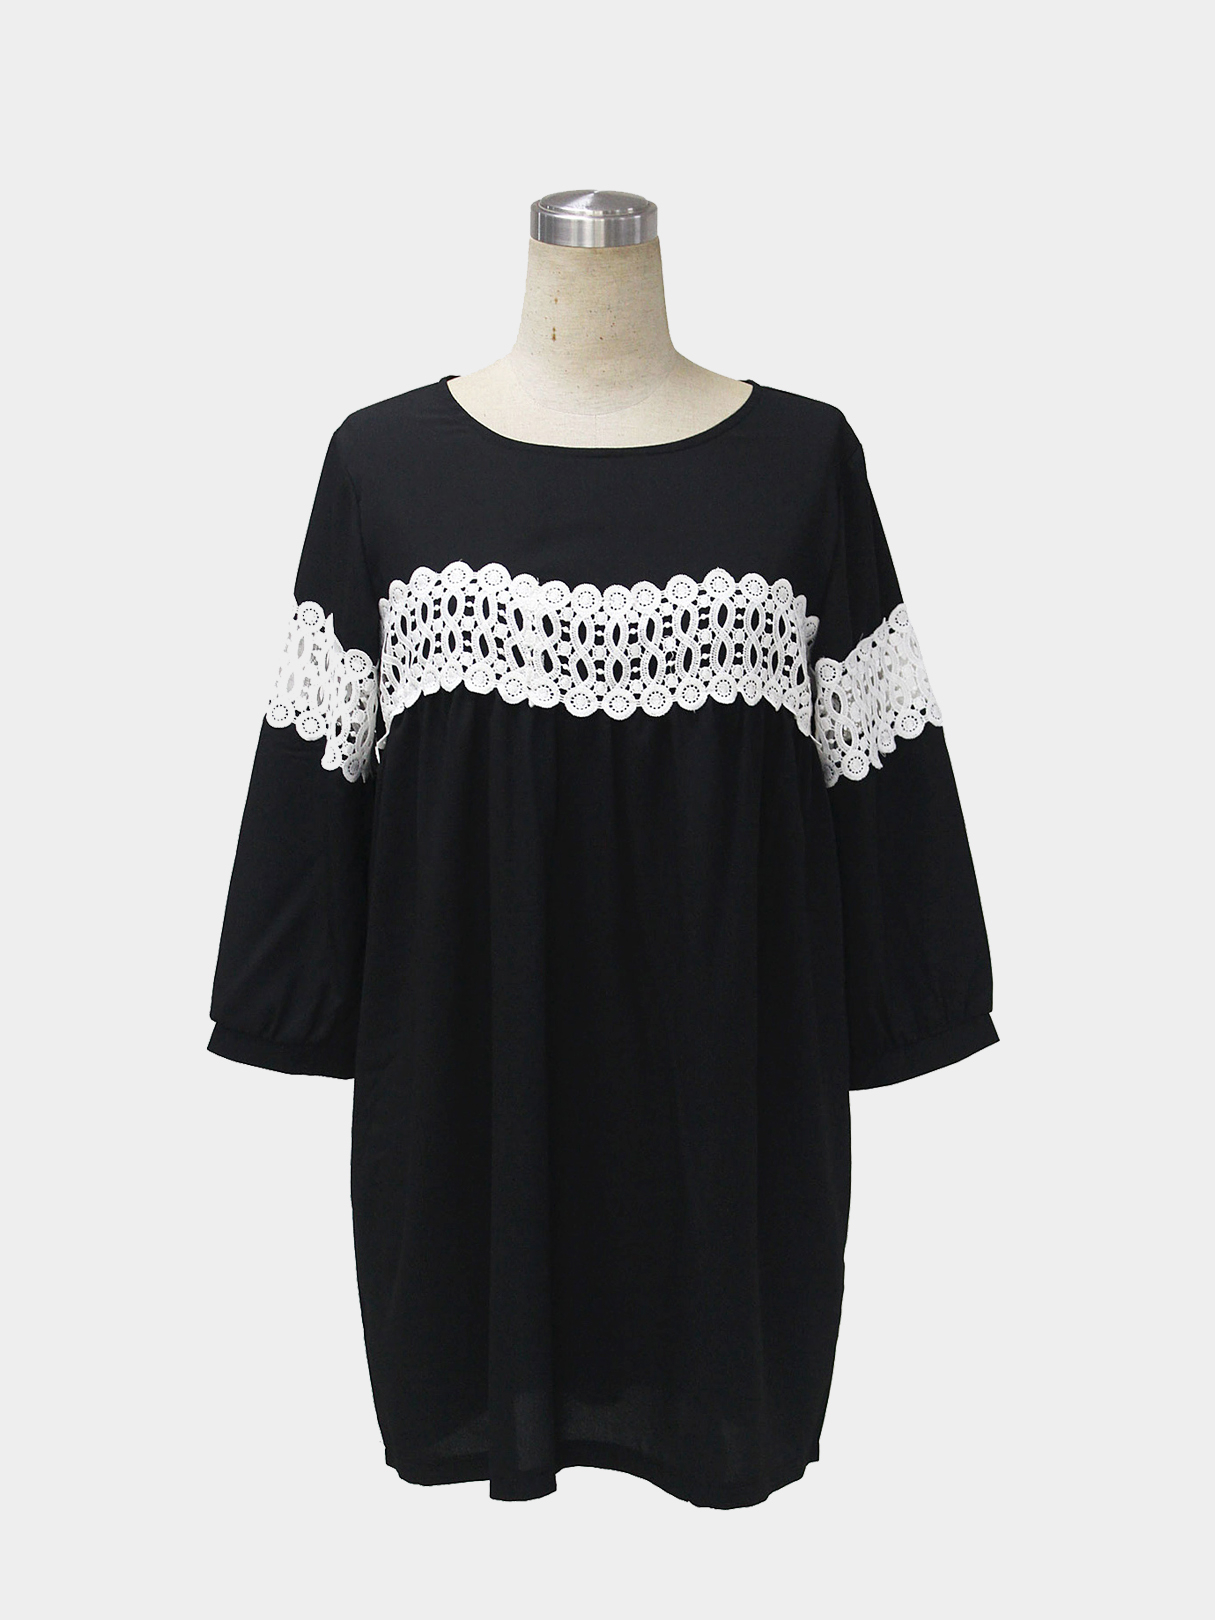 Stitching Loose Dress with Crochet Lace